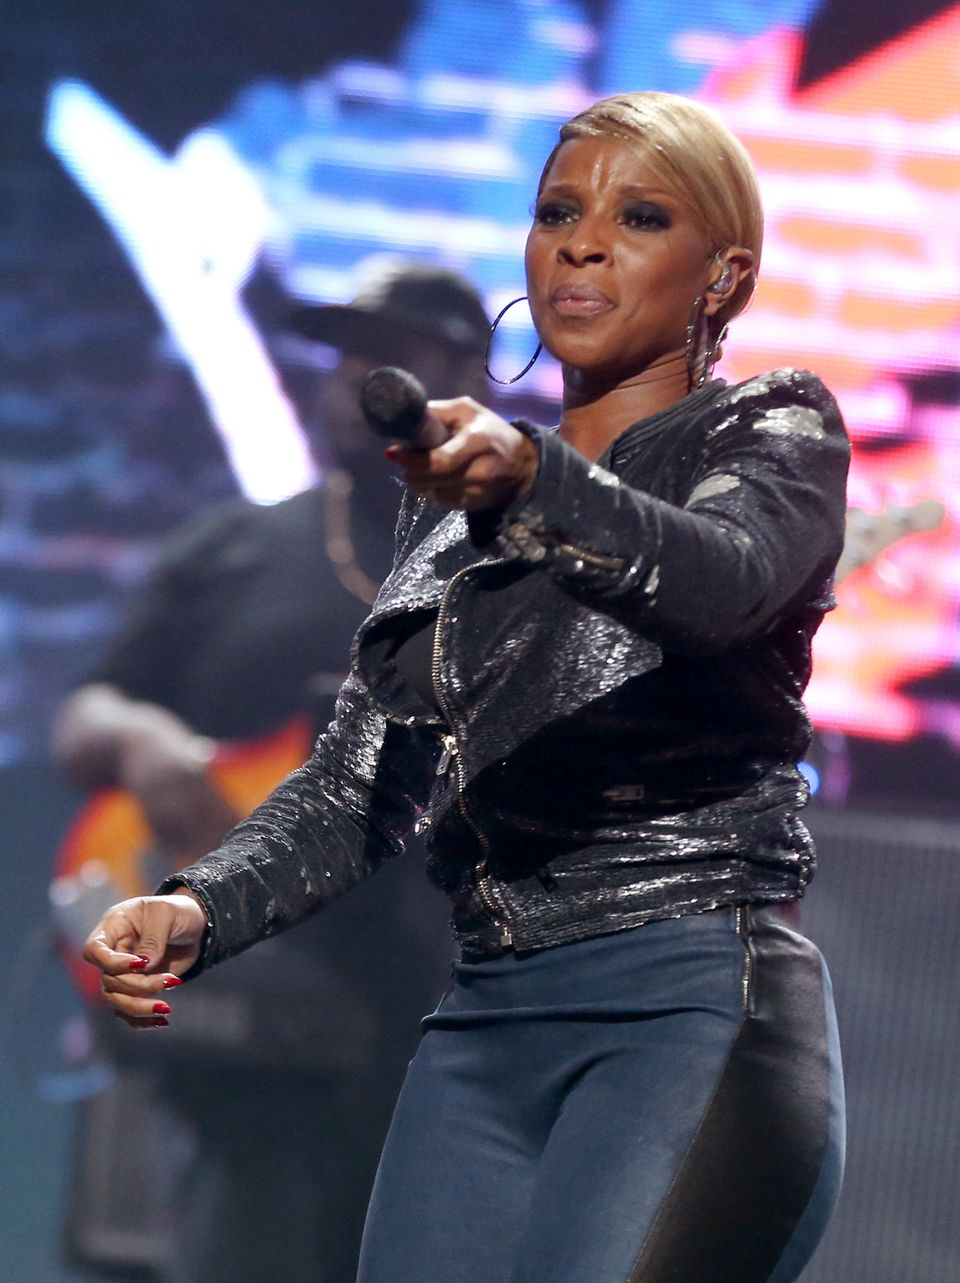 LAS VEGAS, NV - SEPTEMBER 22:  Singer Mary J. Blige performs onstage during the 2012 iHeartRadio Music Festival at the MGM Gr